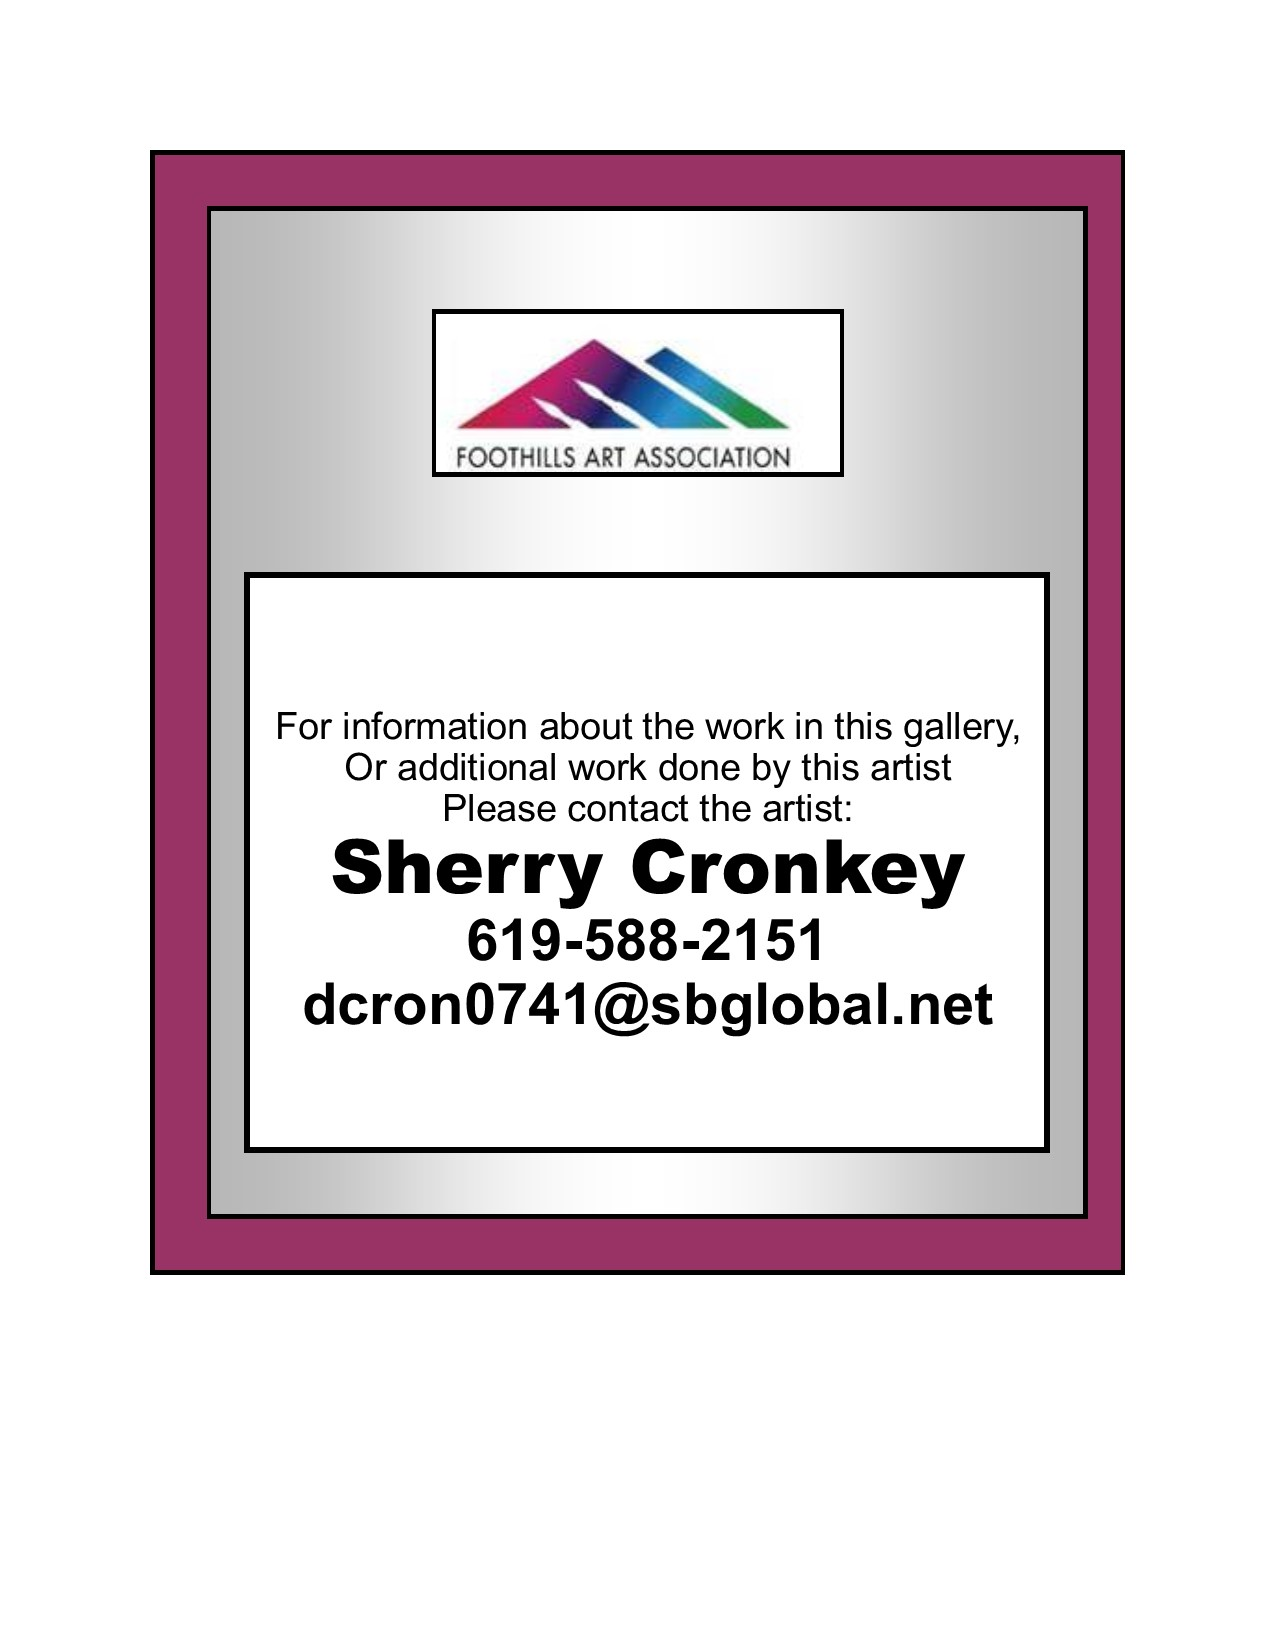 Sherry Cronkey Contacts